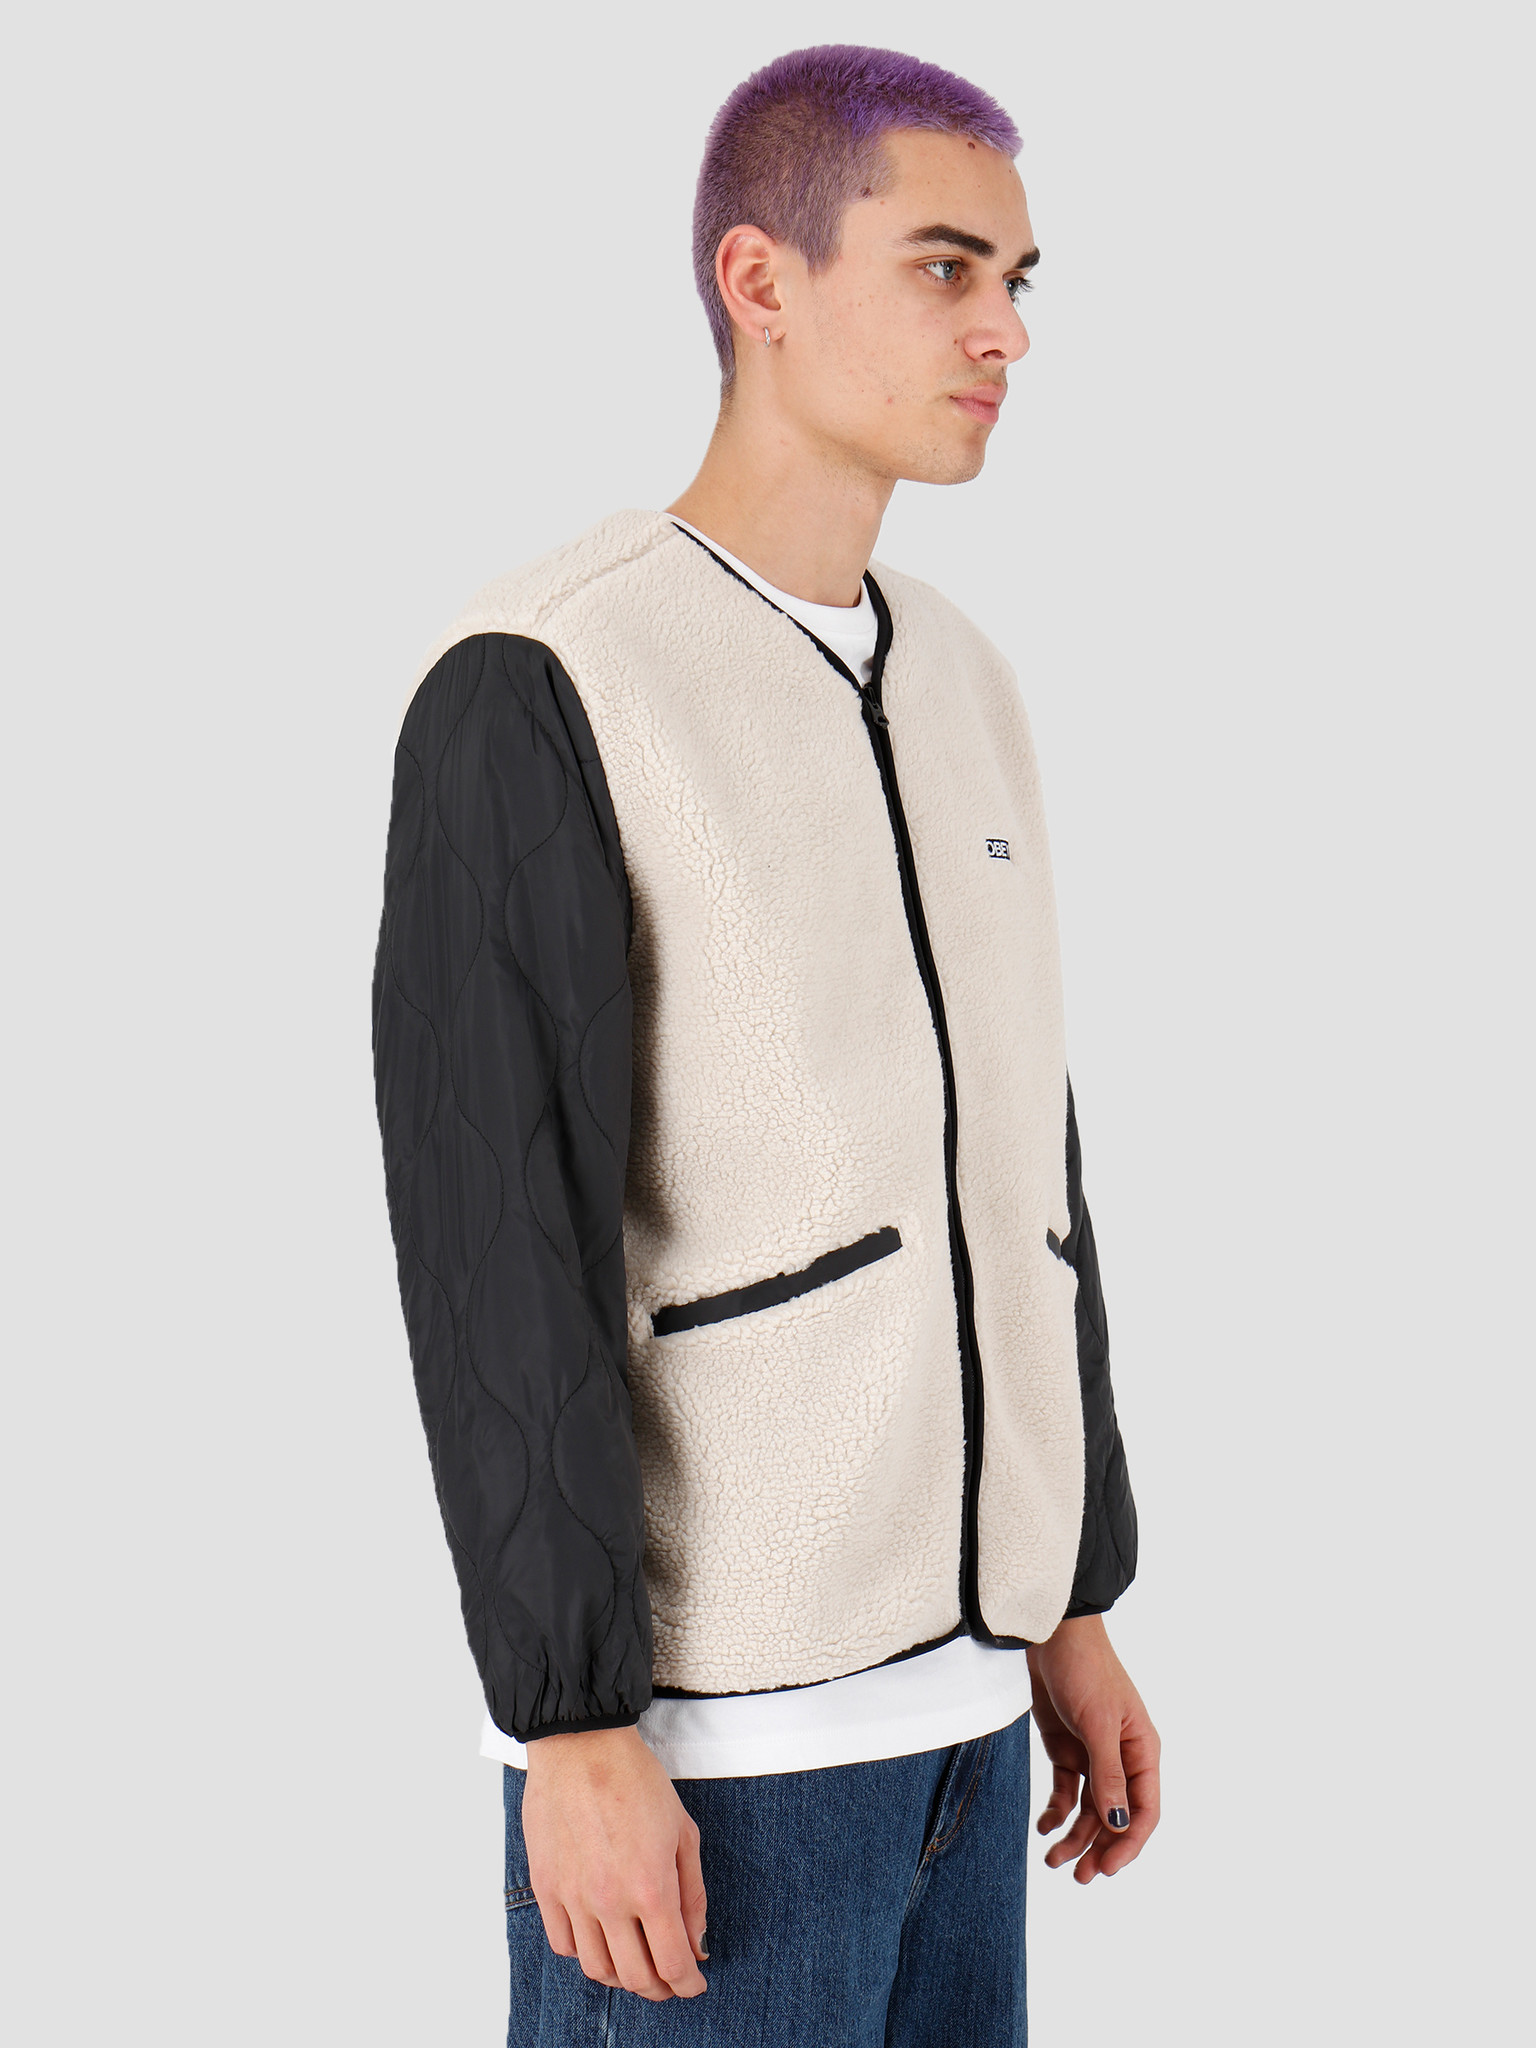 Obey Obey Oyster Jacket Natural Multi 121800407Nml